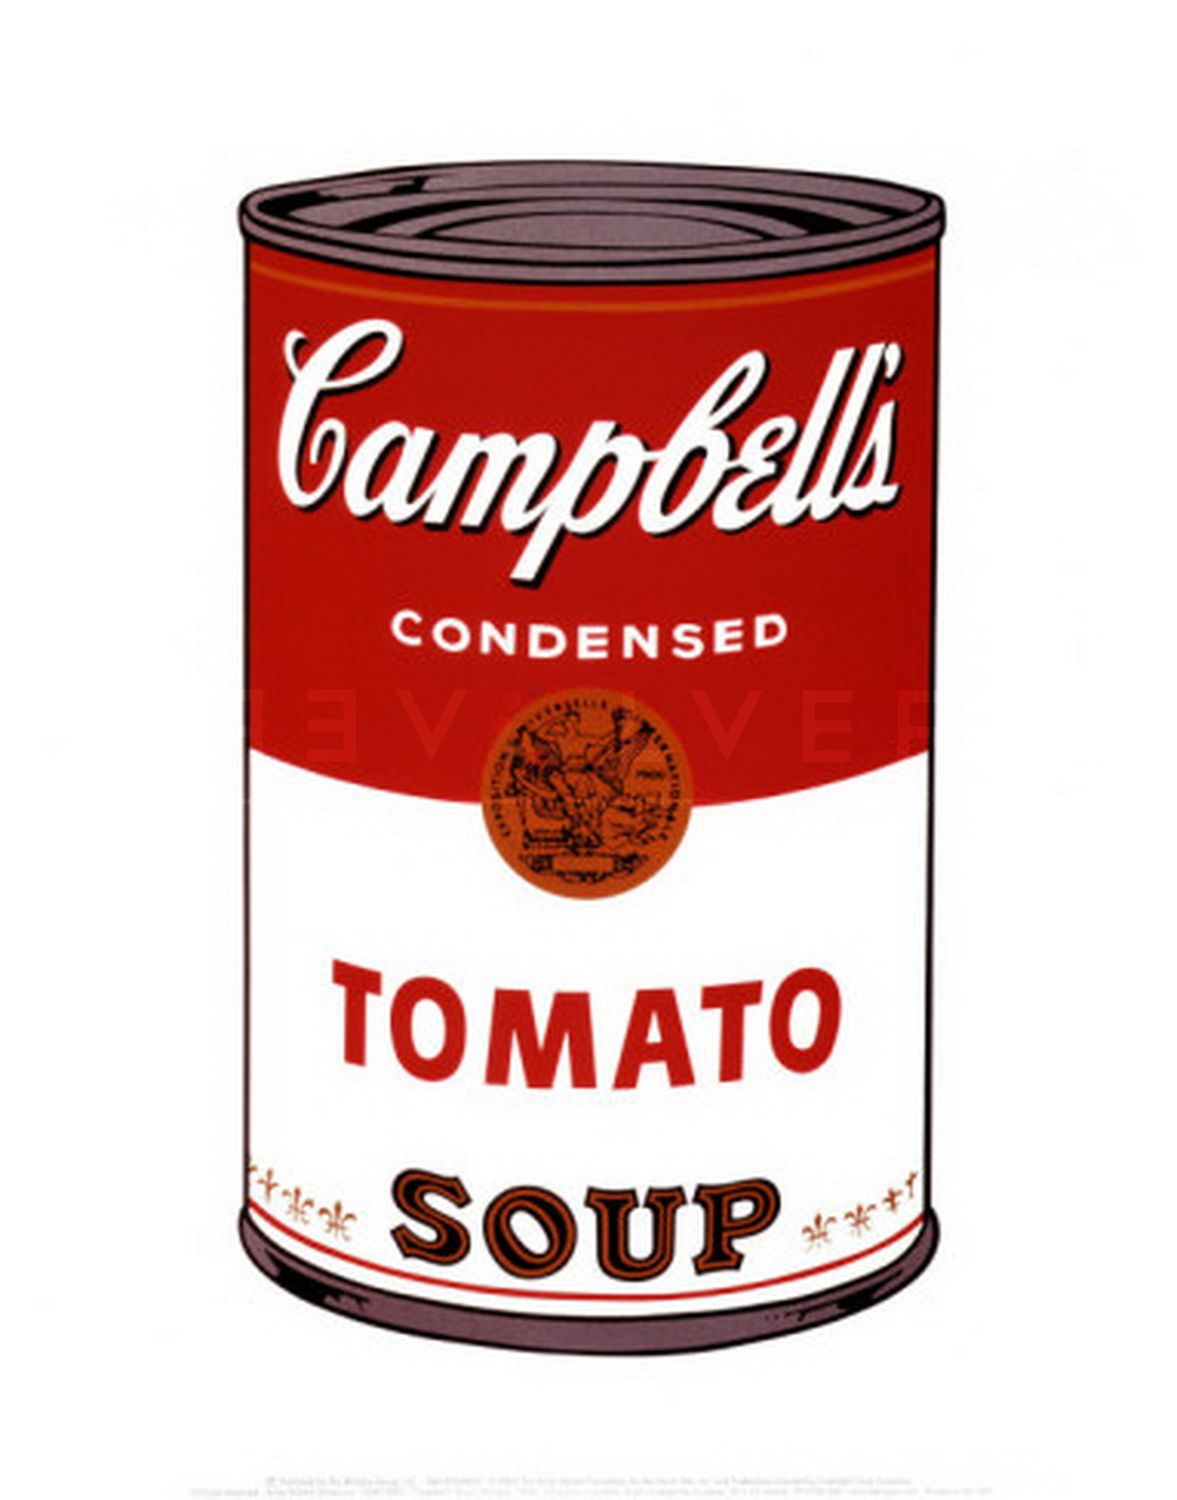 Campbell S Soup I Tomato Soup 46 Andy Warhol Andy Warhol Art Warhol Art Campbell S Soup Cans